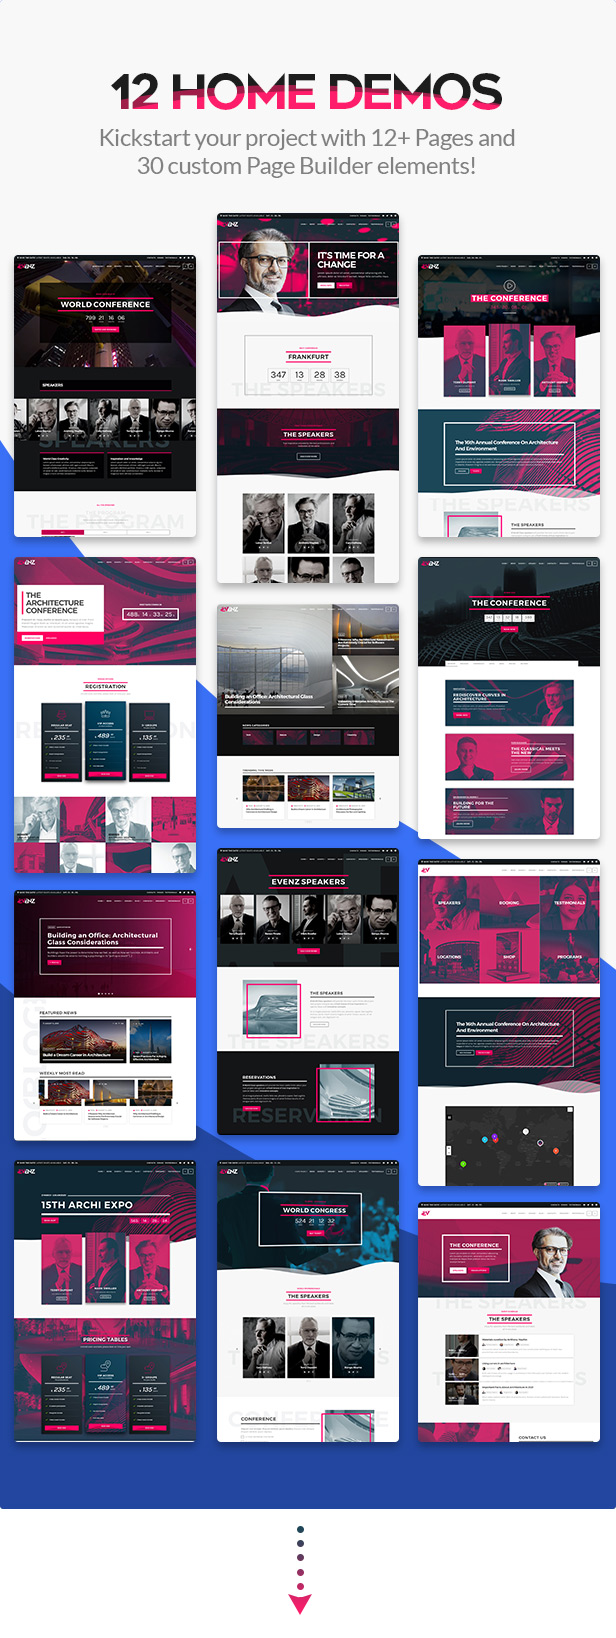 evenz_info-02 Evenz - Conference and Event WordPress Theme Nulled Free Download Evenz – Conference and Event WordPress Theme Nulled Free Download evenz info 02